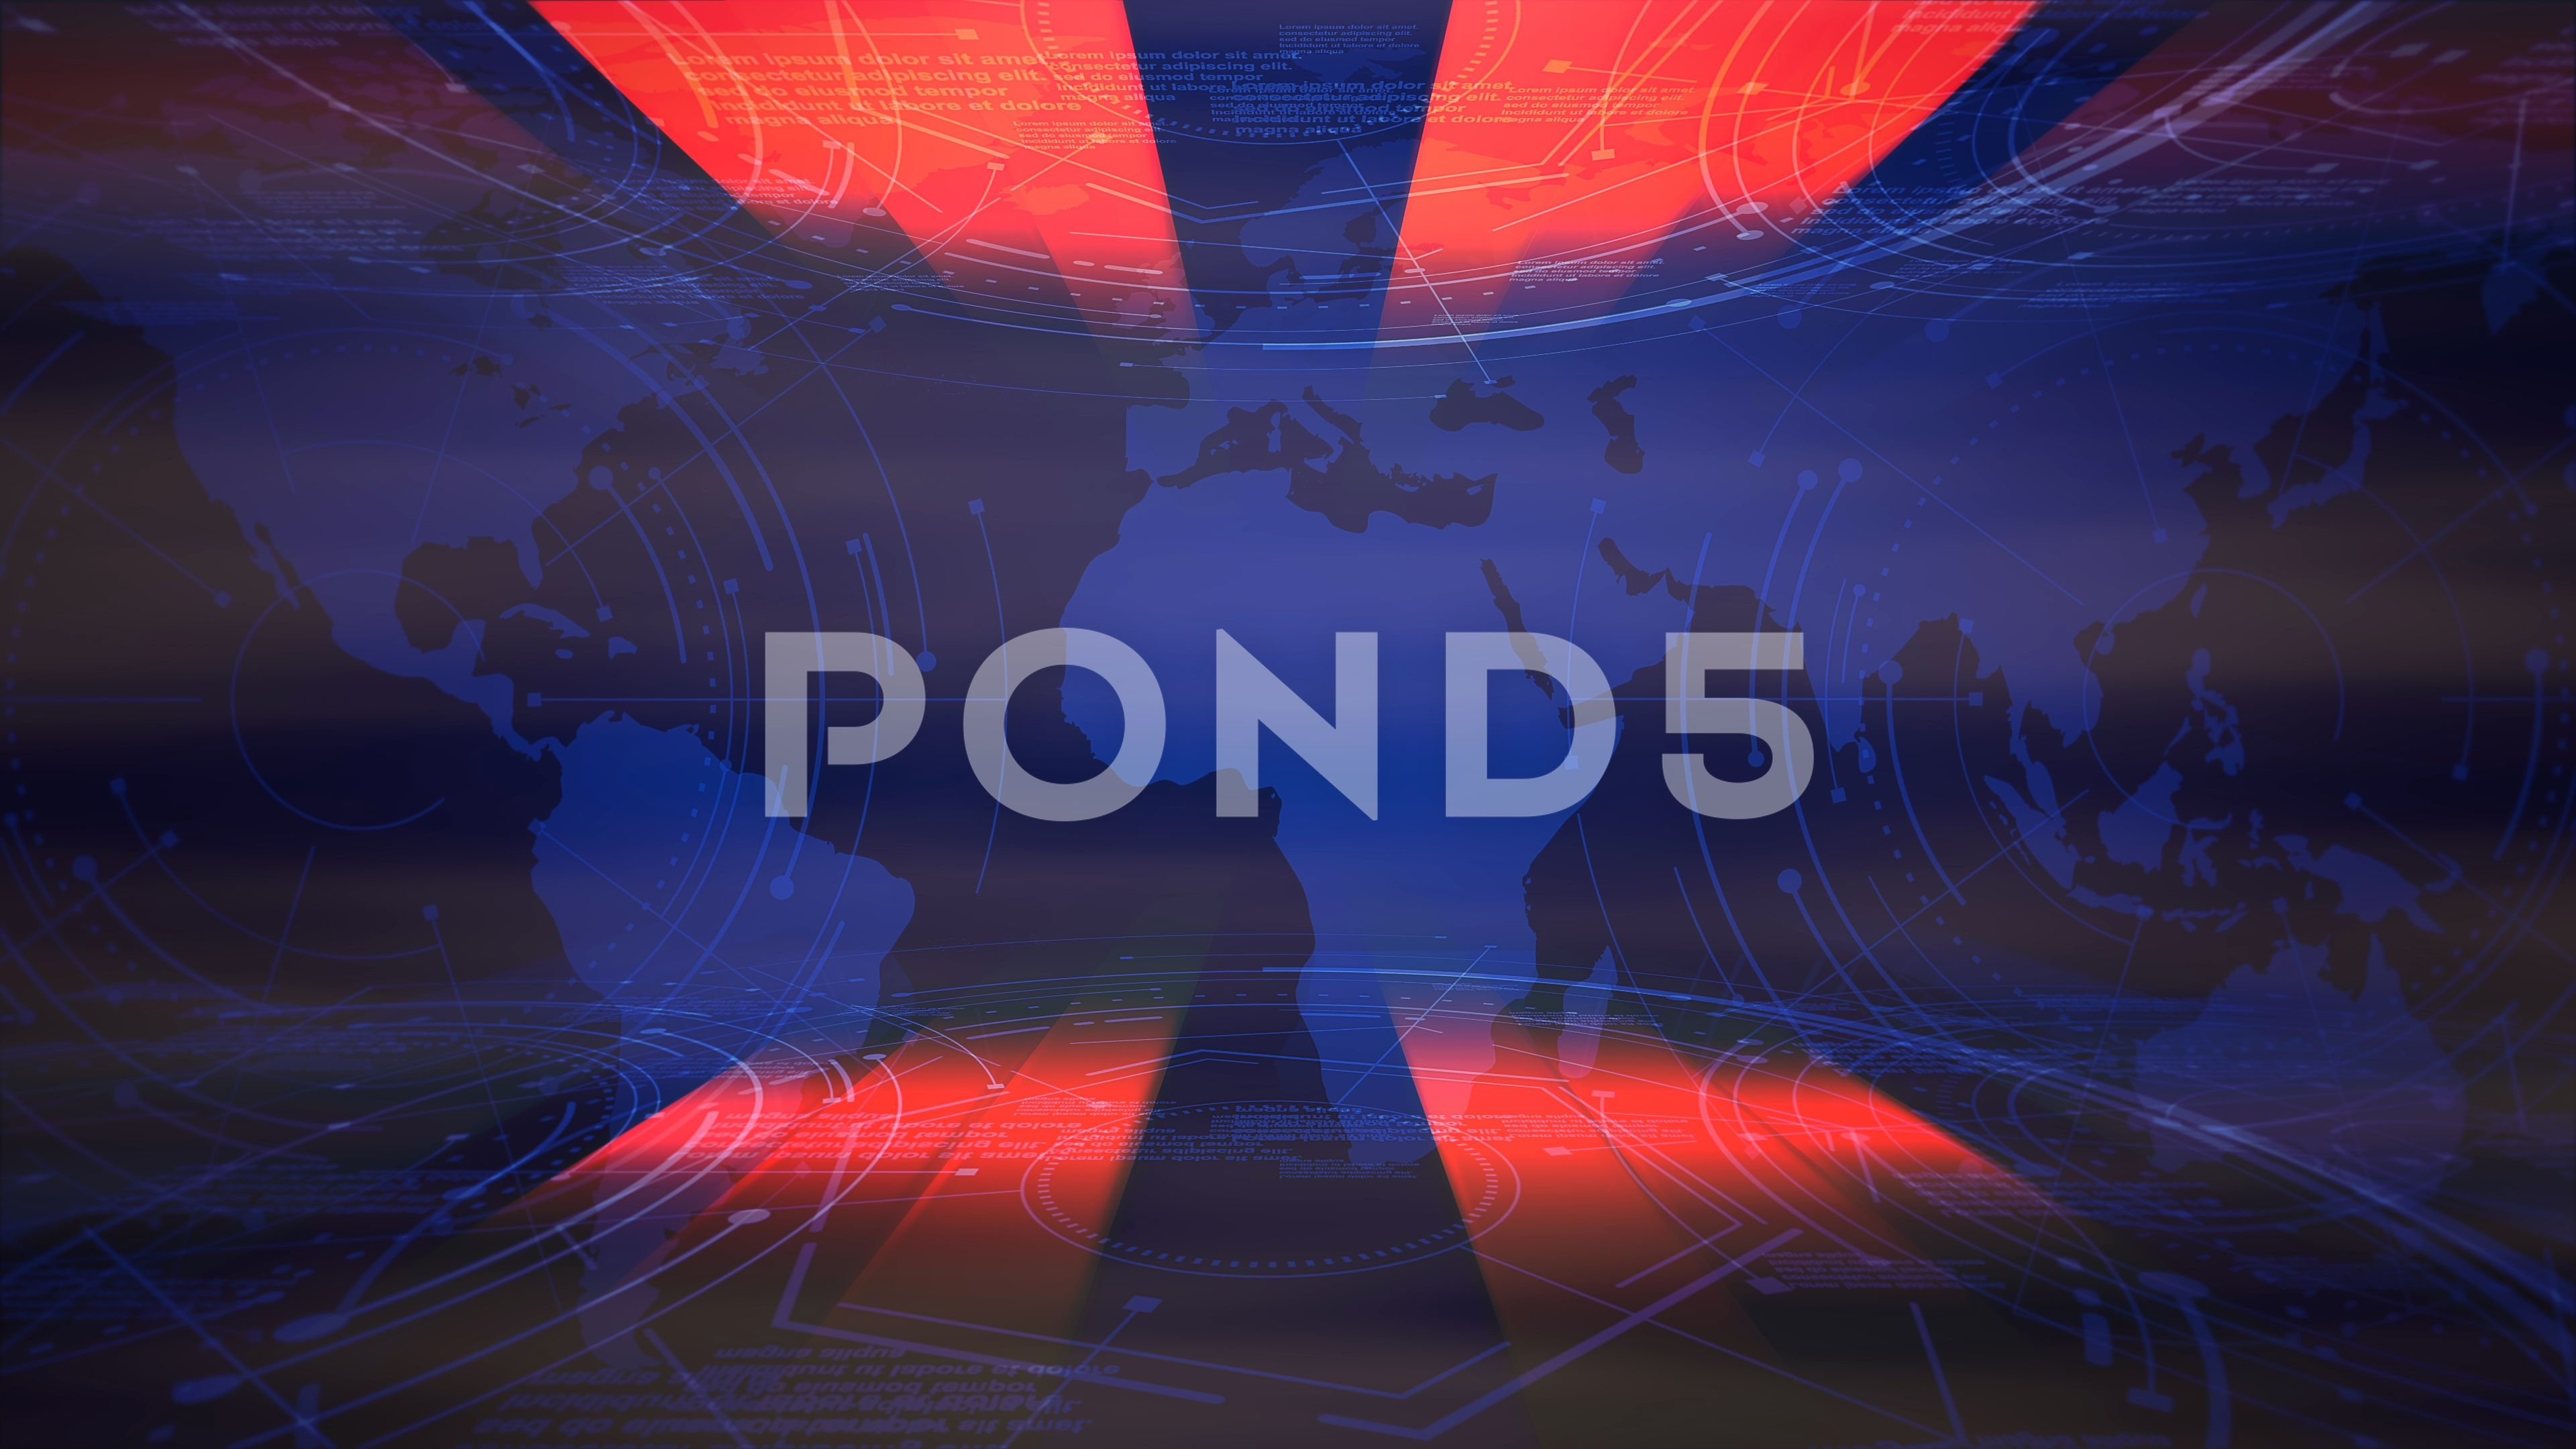 News Intro Graphic Animation With Lines And World Map Abstract